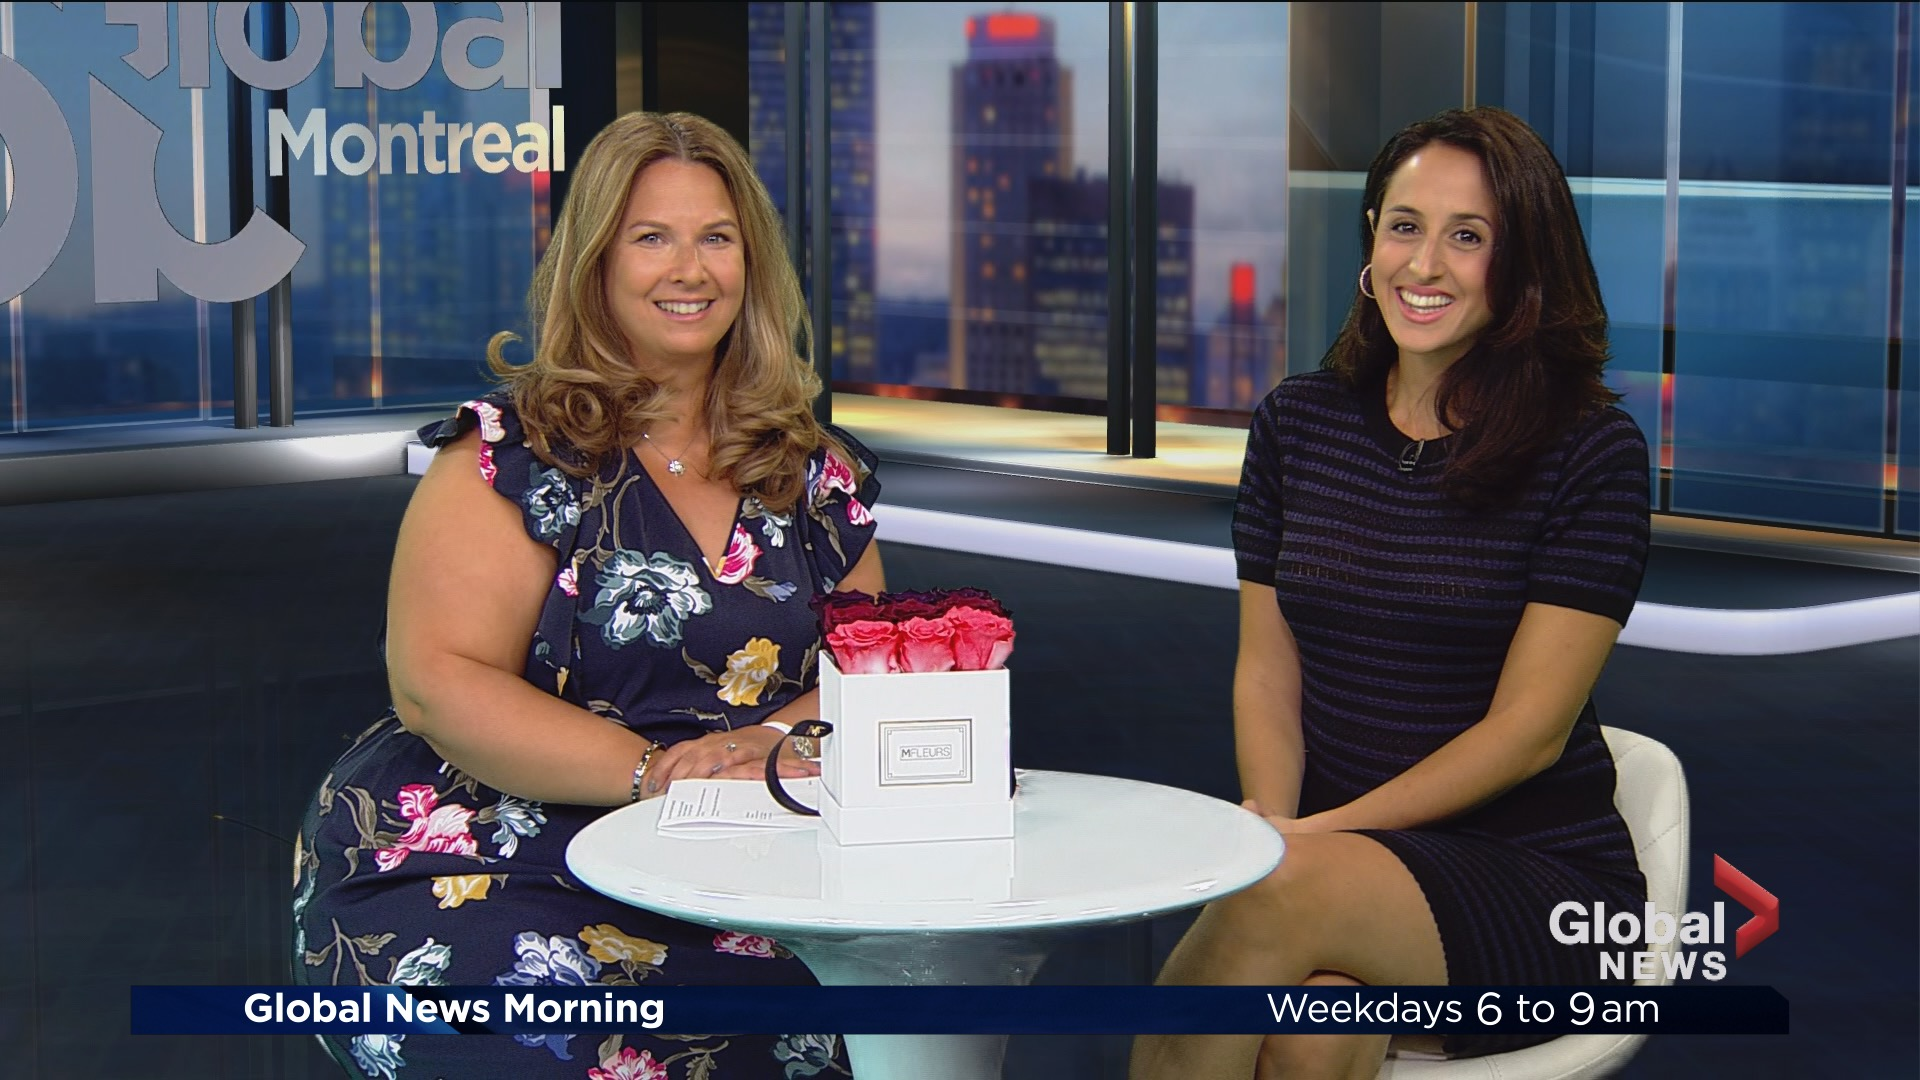 Sherri is talking with Laura Casella of Global News Morning about finding your career passion